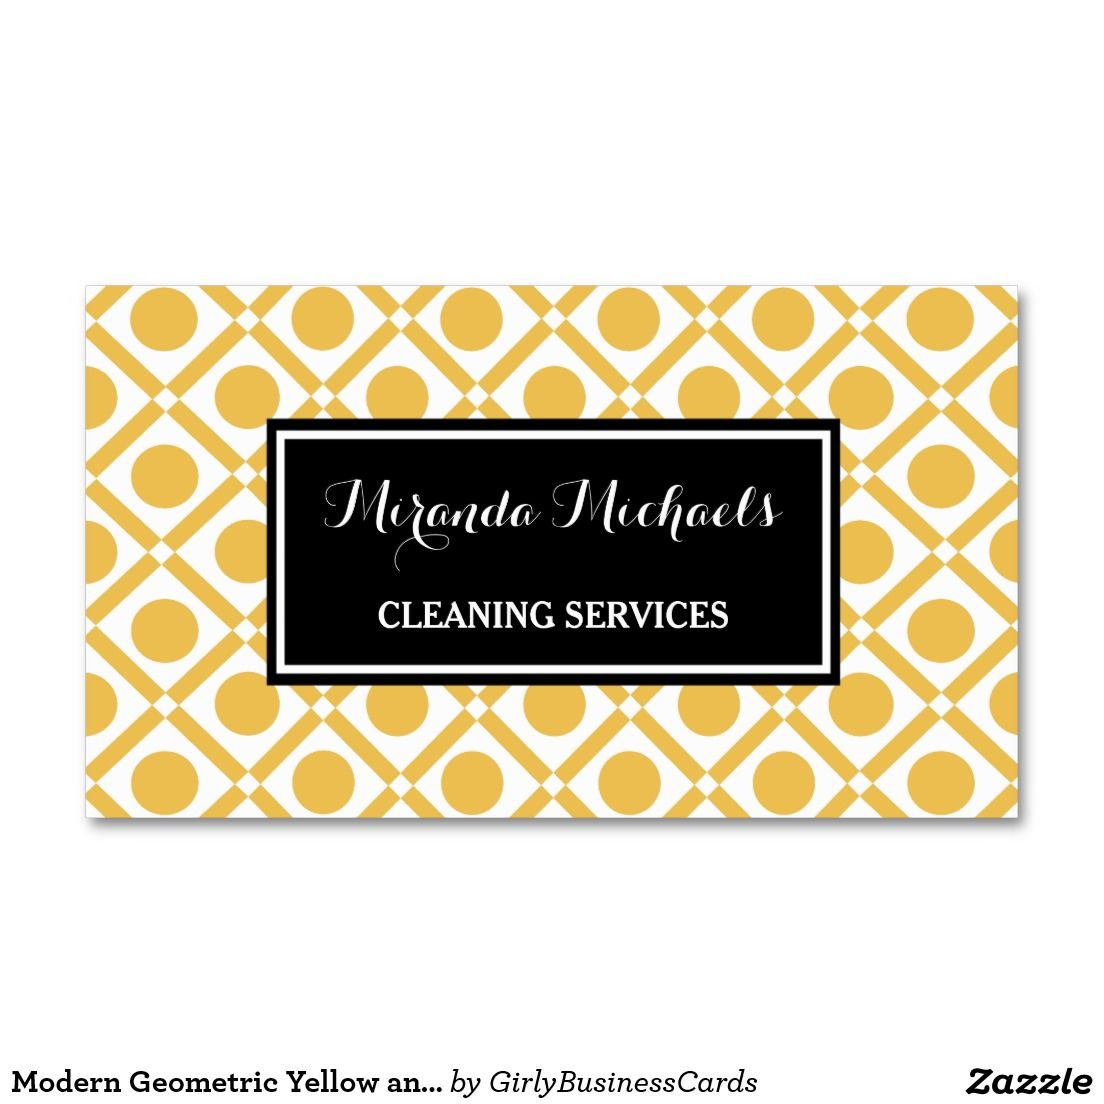 Modern Geometric Yellow and Black Cleaning Service Business Card ...